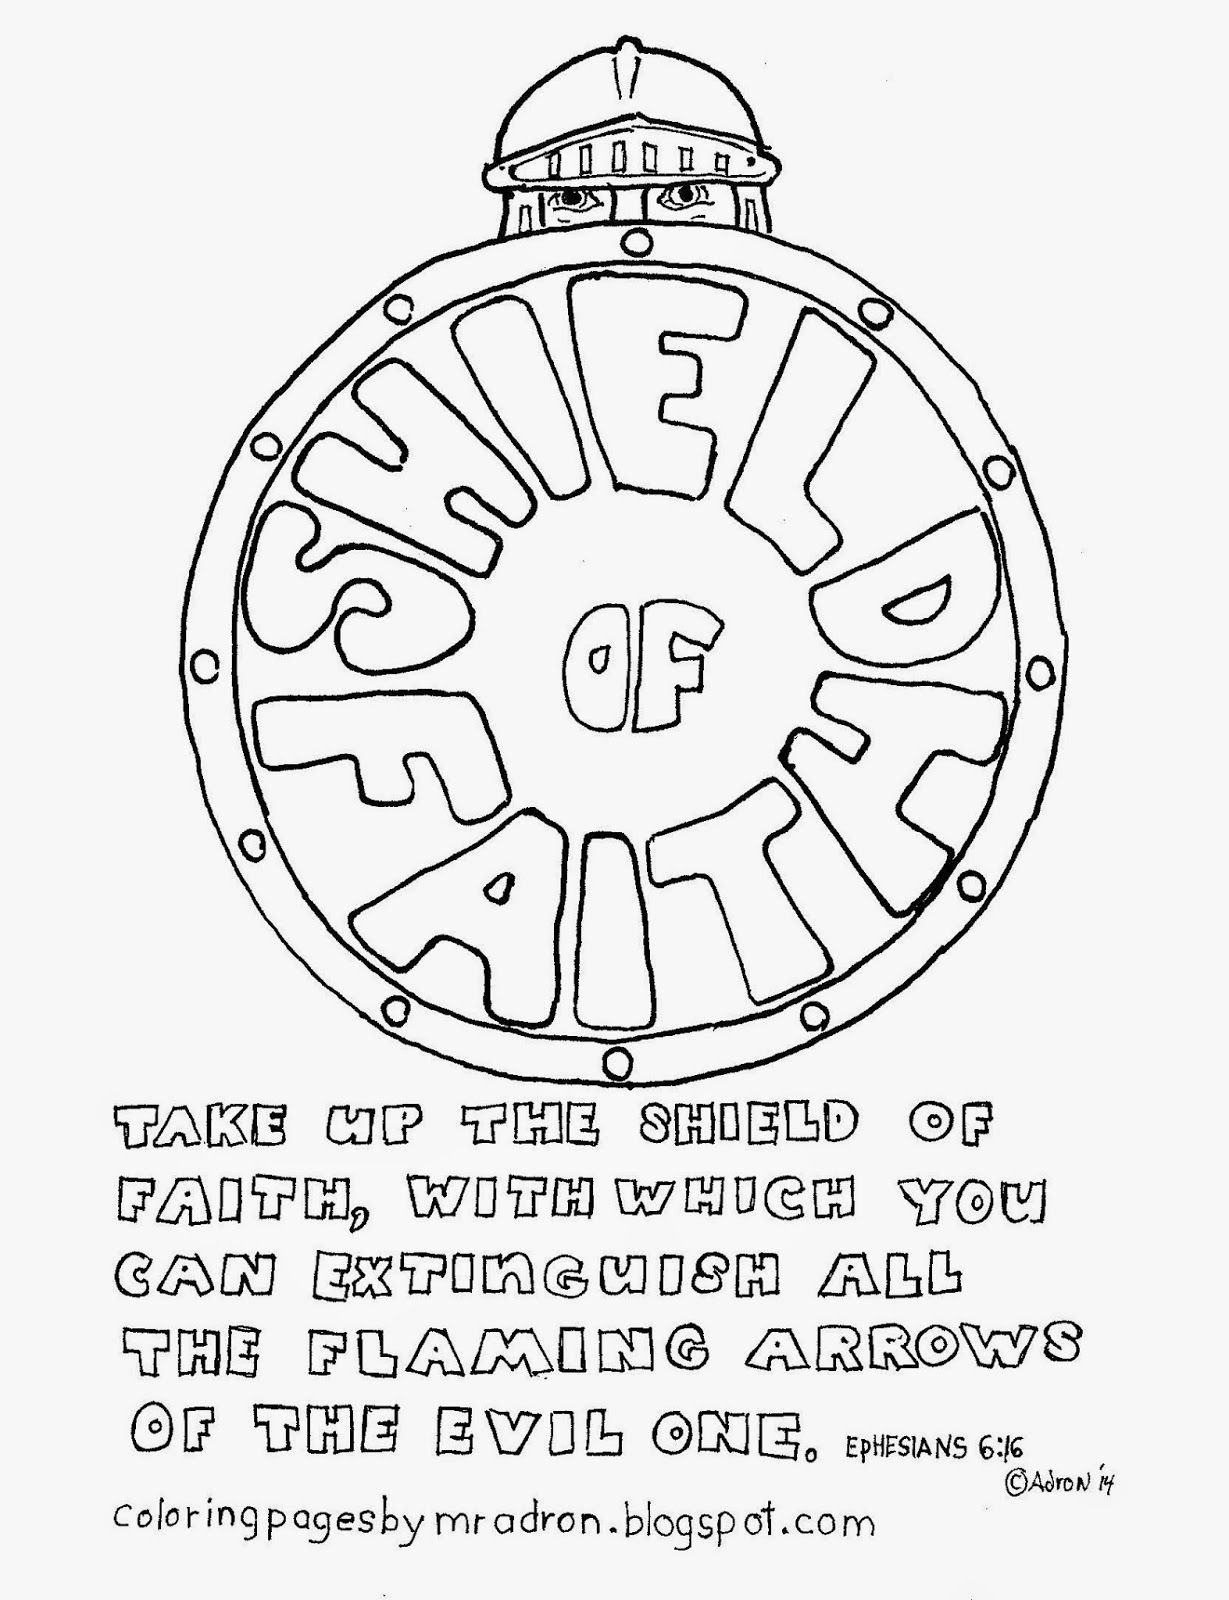 Coloring pages for kids by mr adron the shield of faith free coloring page ephesians